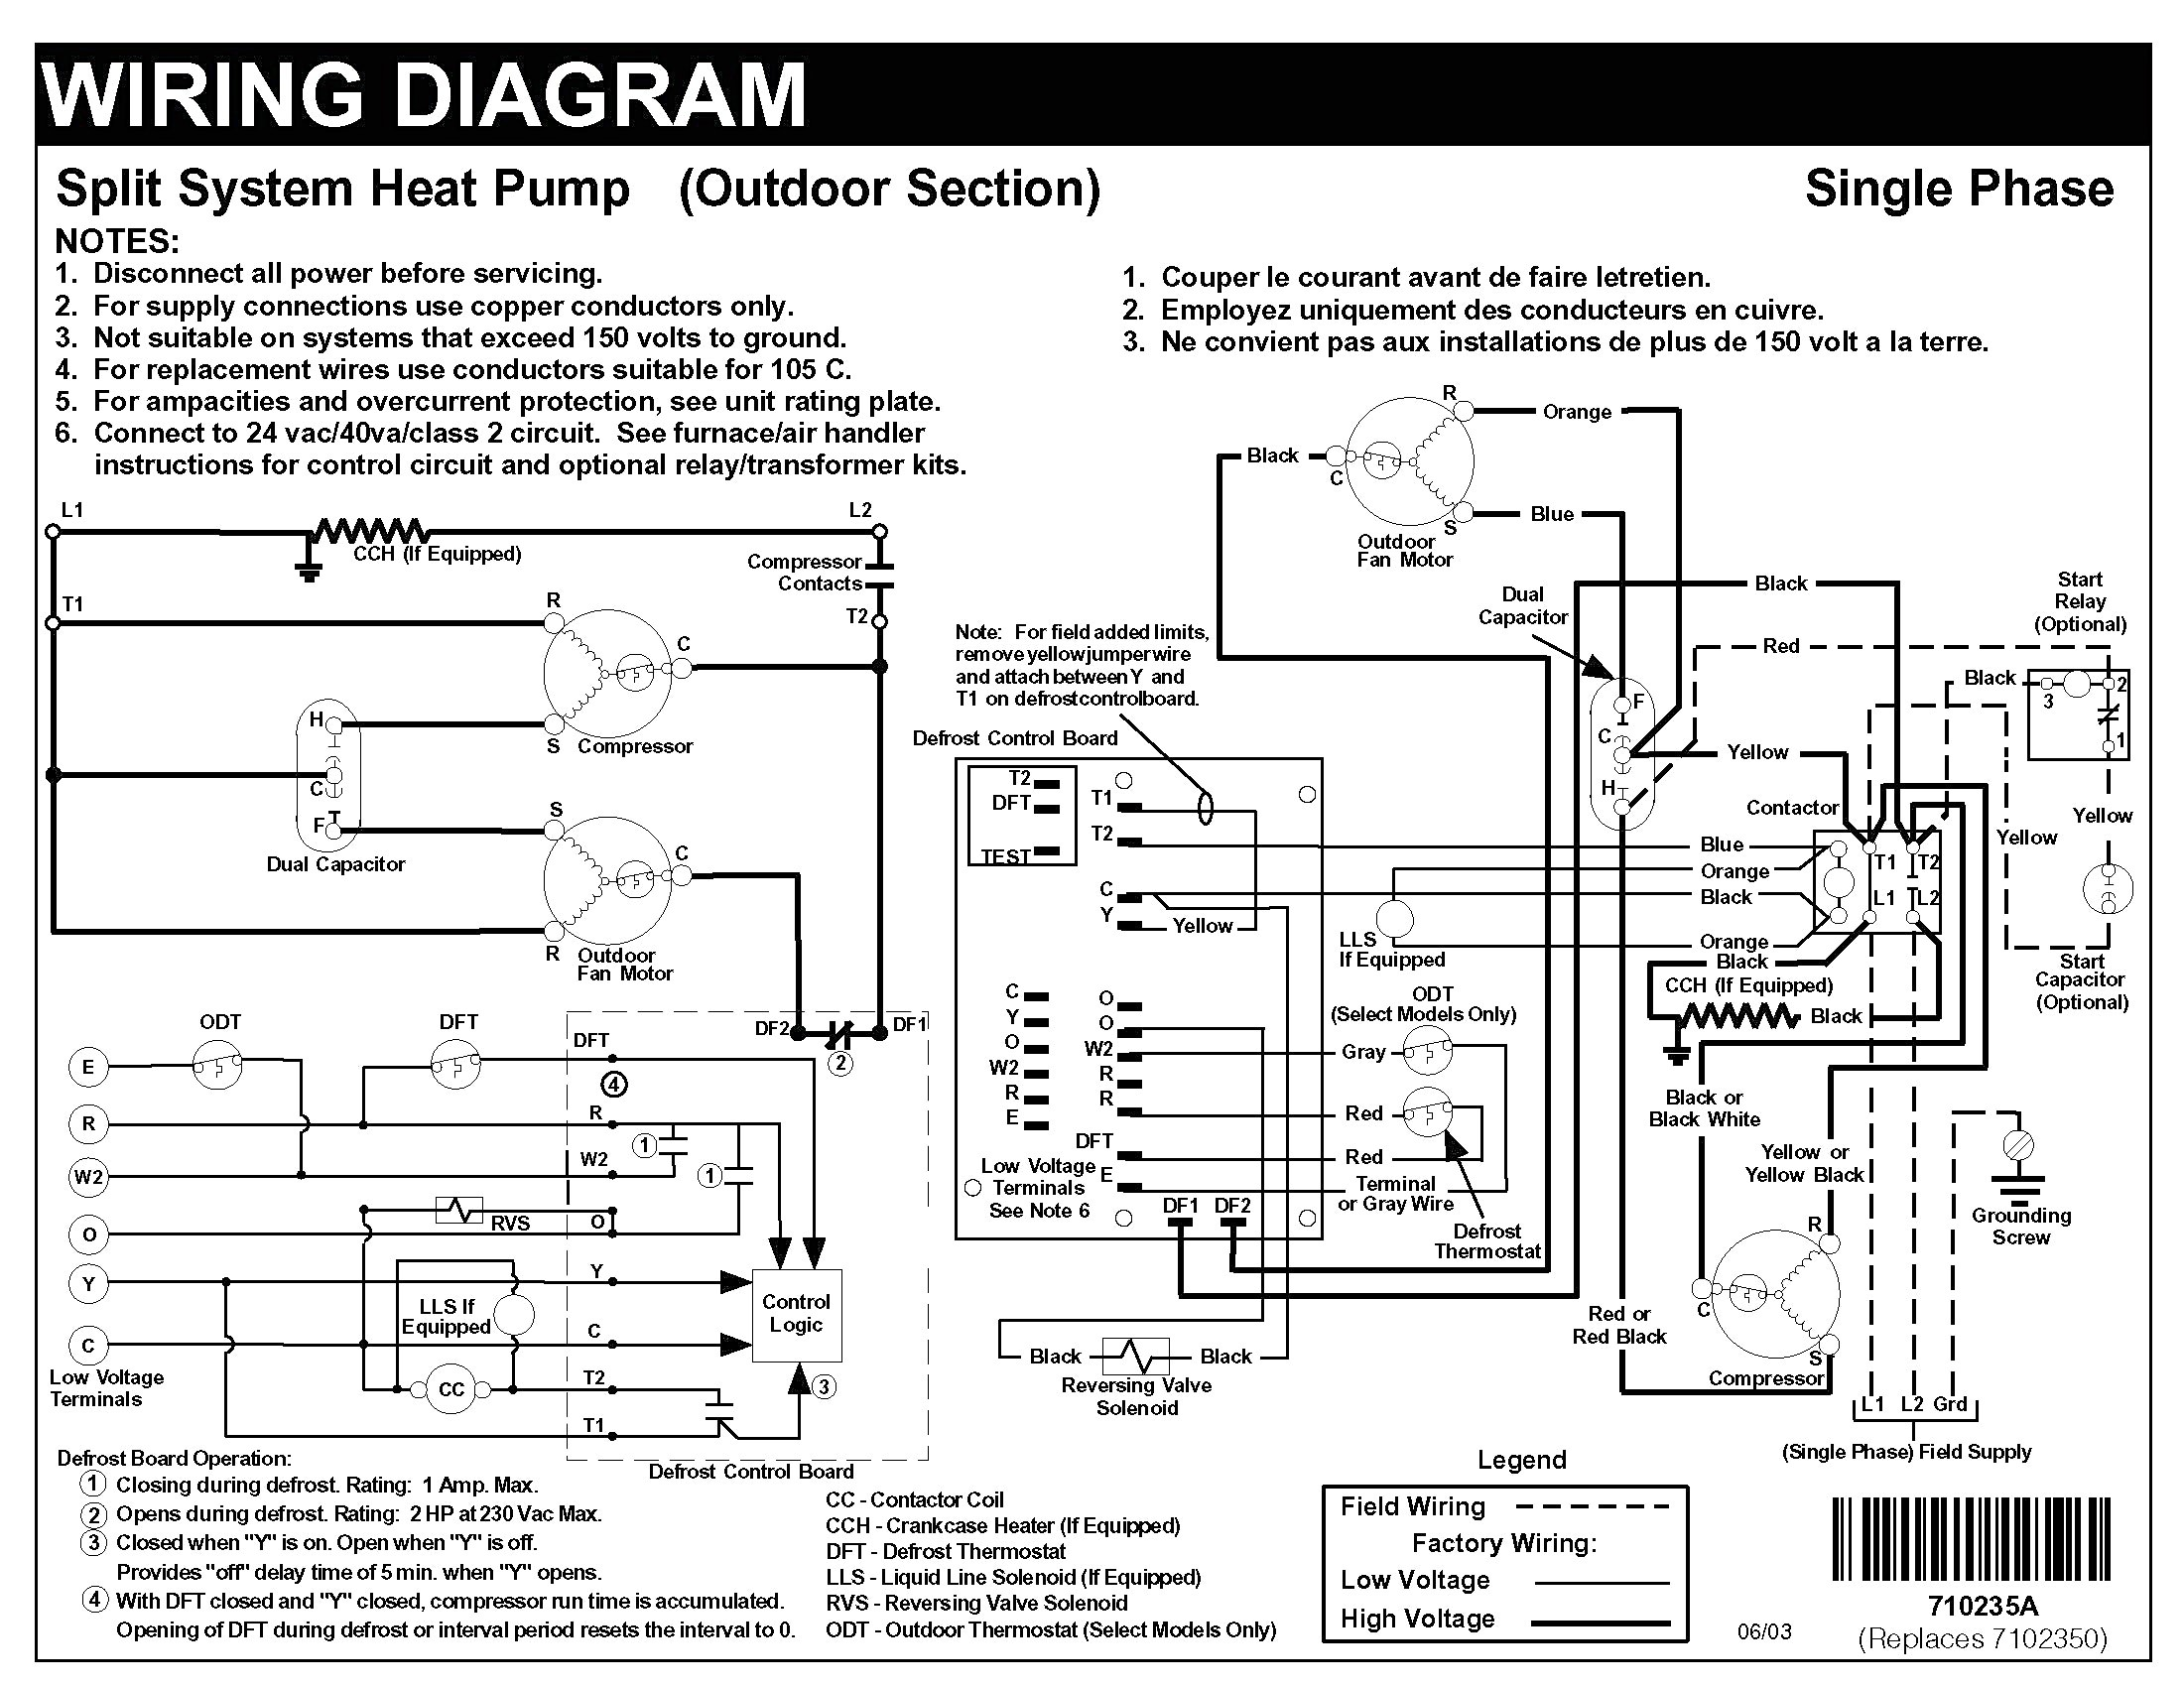 Trane xv thermostat wiring diagram the best